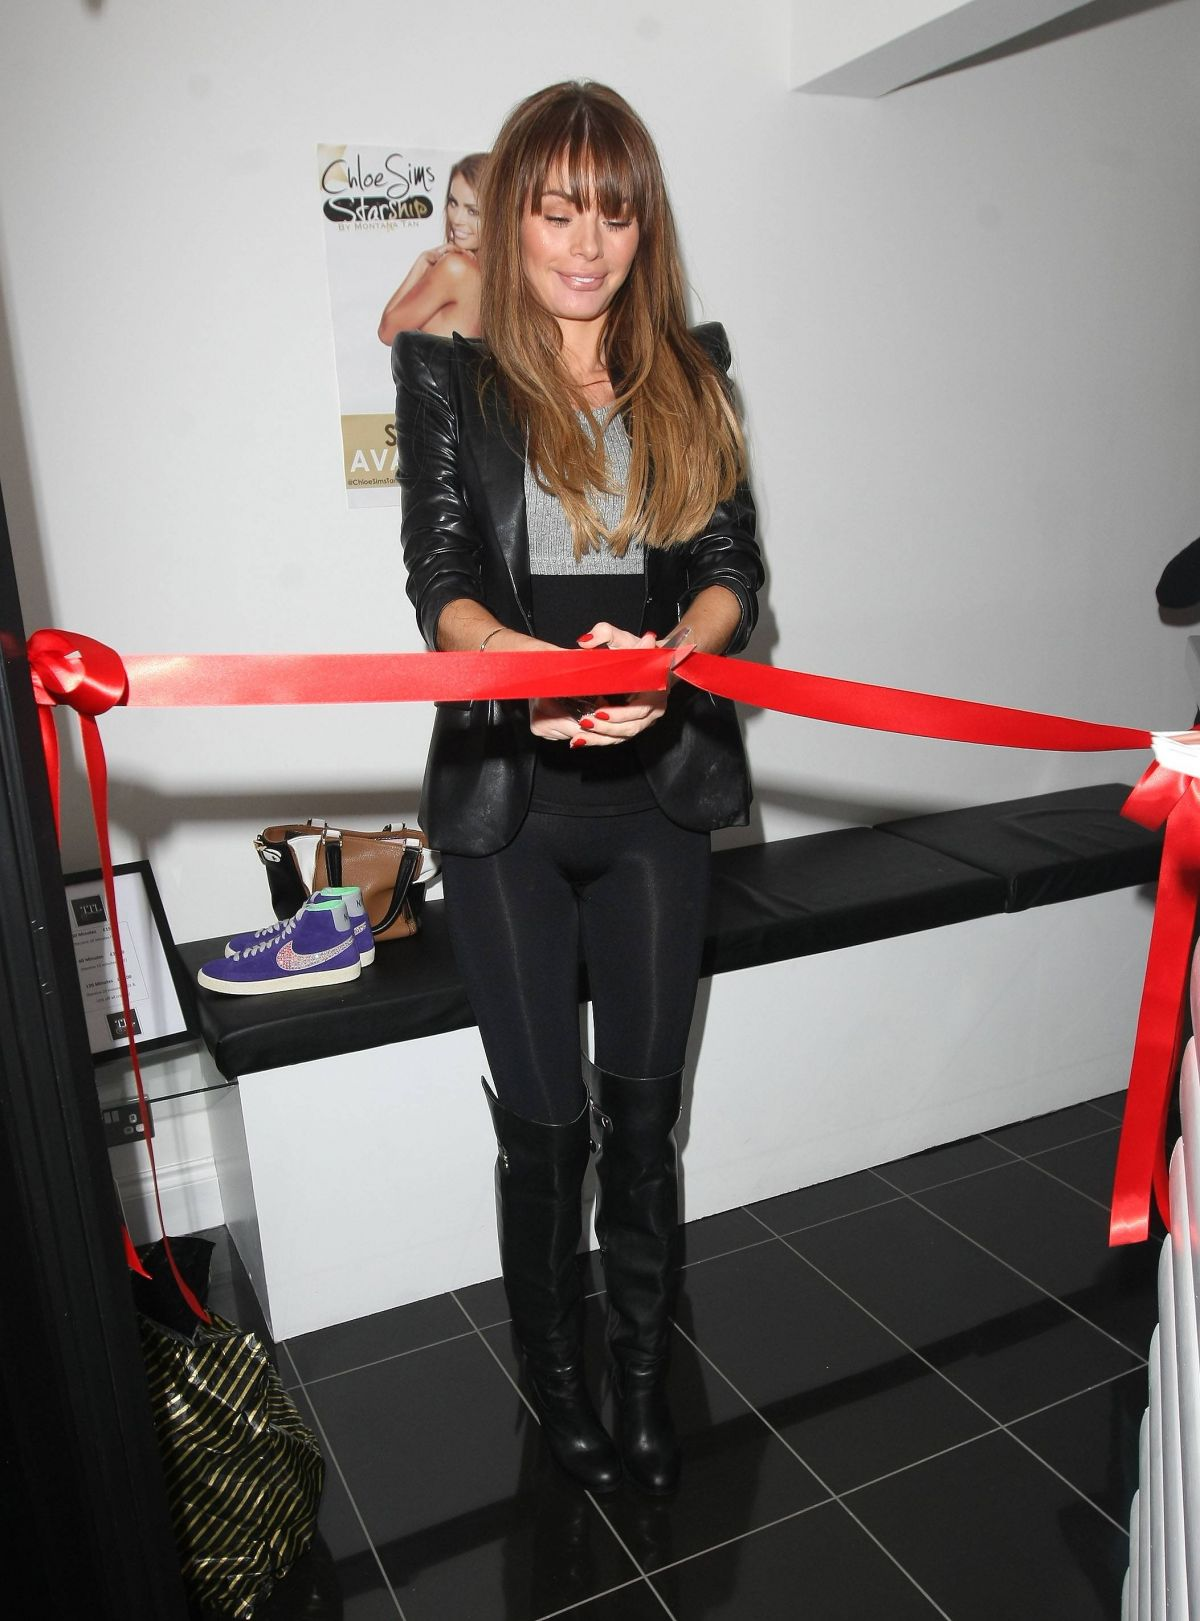 Chloe Sims In Black Spandex Opening A Tanning Shop In